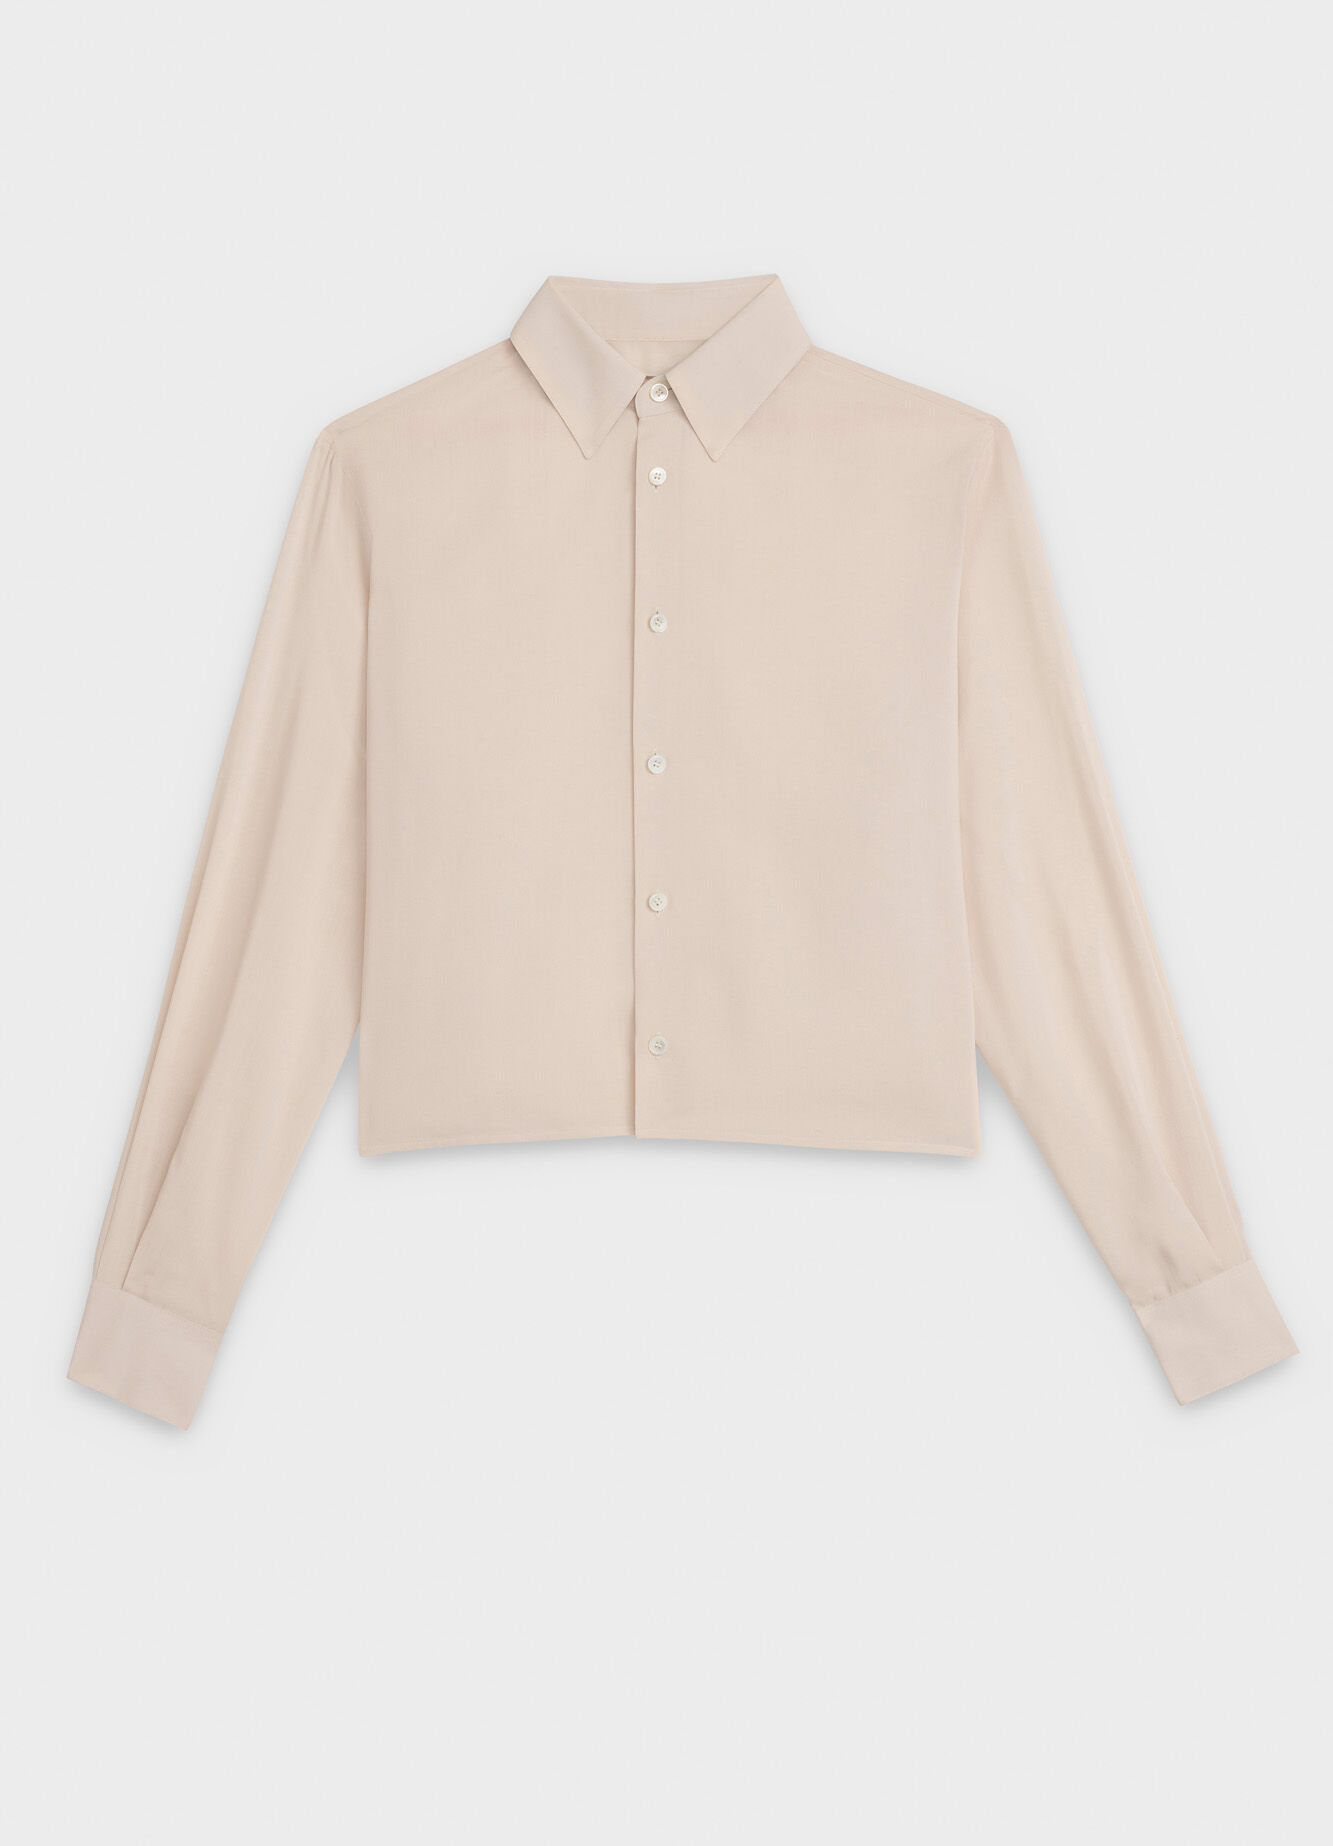 CELINE CROPPED SHIRT WITH DRUGSTORE COLLAR IN TOILE VISCOSE